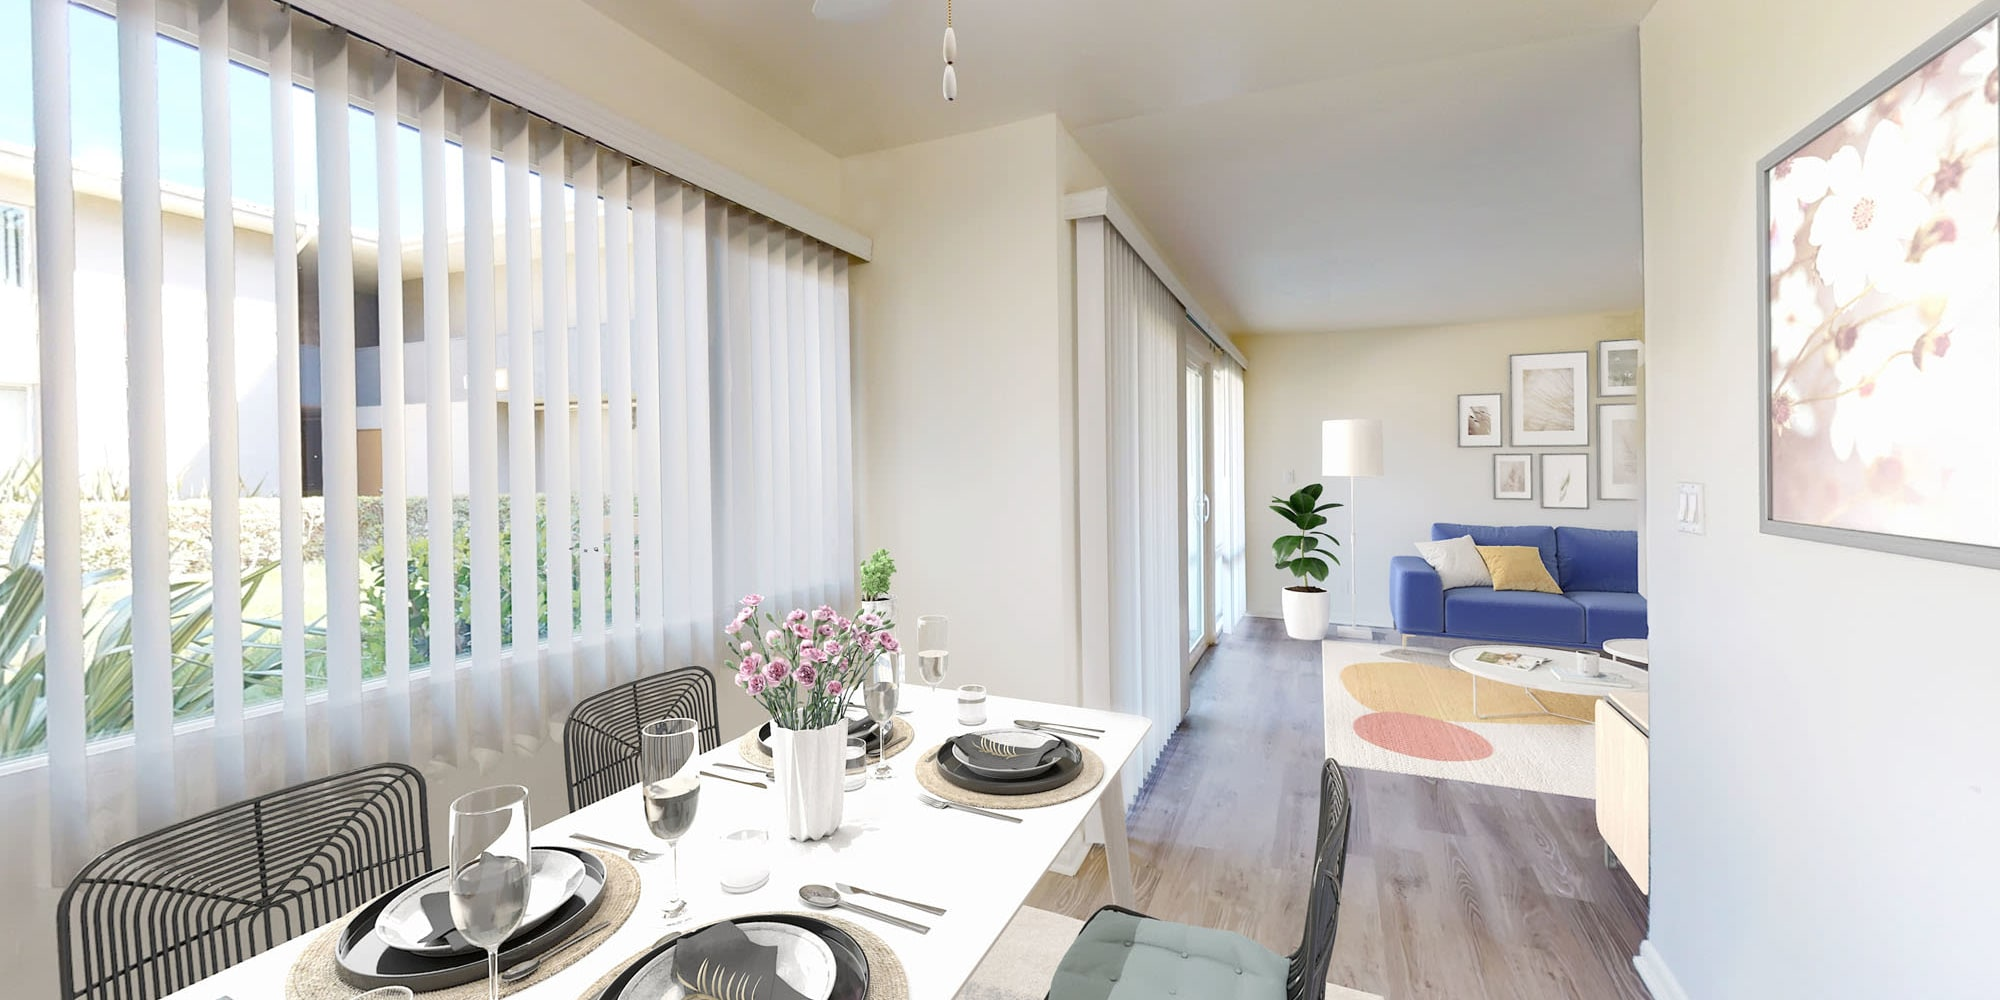 Partial view of the living area from a two bedroom home's dining space at West Park Village in Los Angeles, California